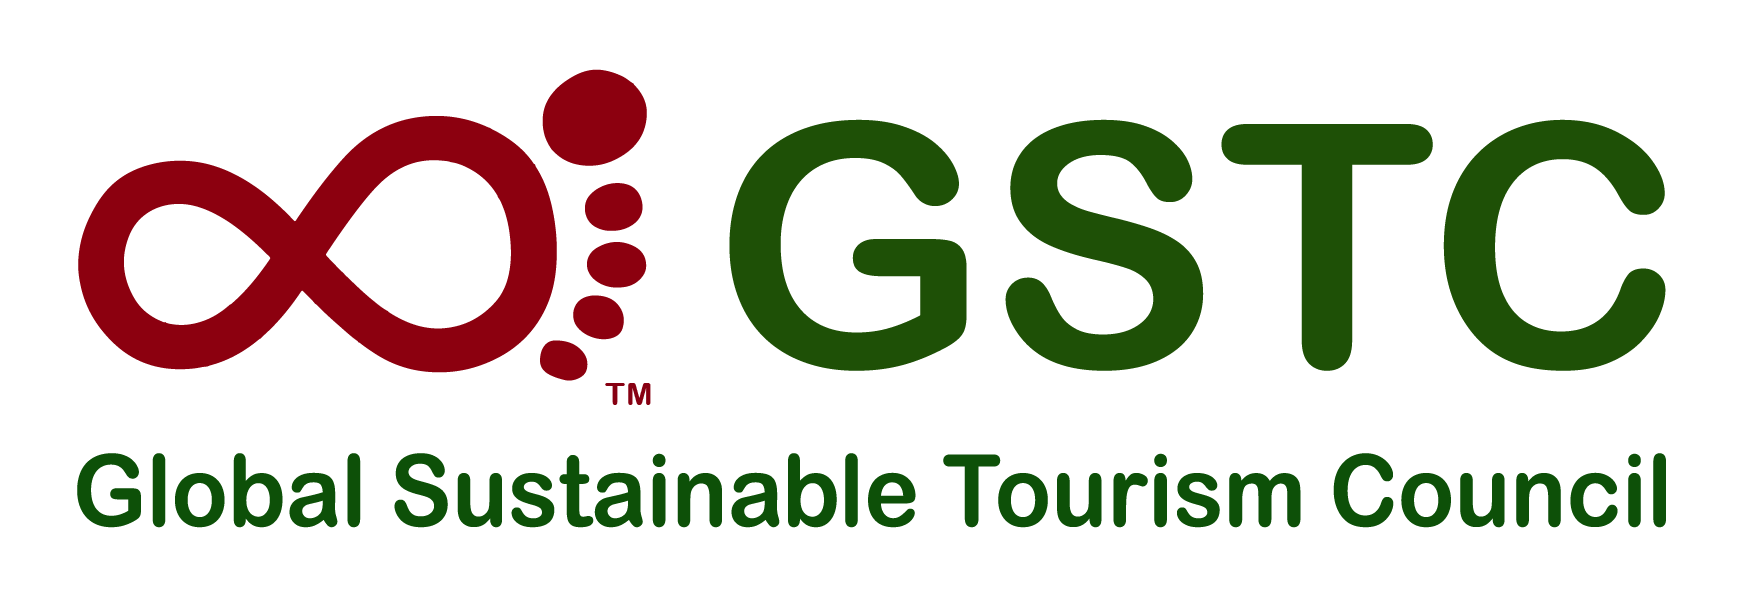 GSTC-Logo-2017-Horizontal-transperent-background